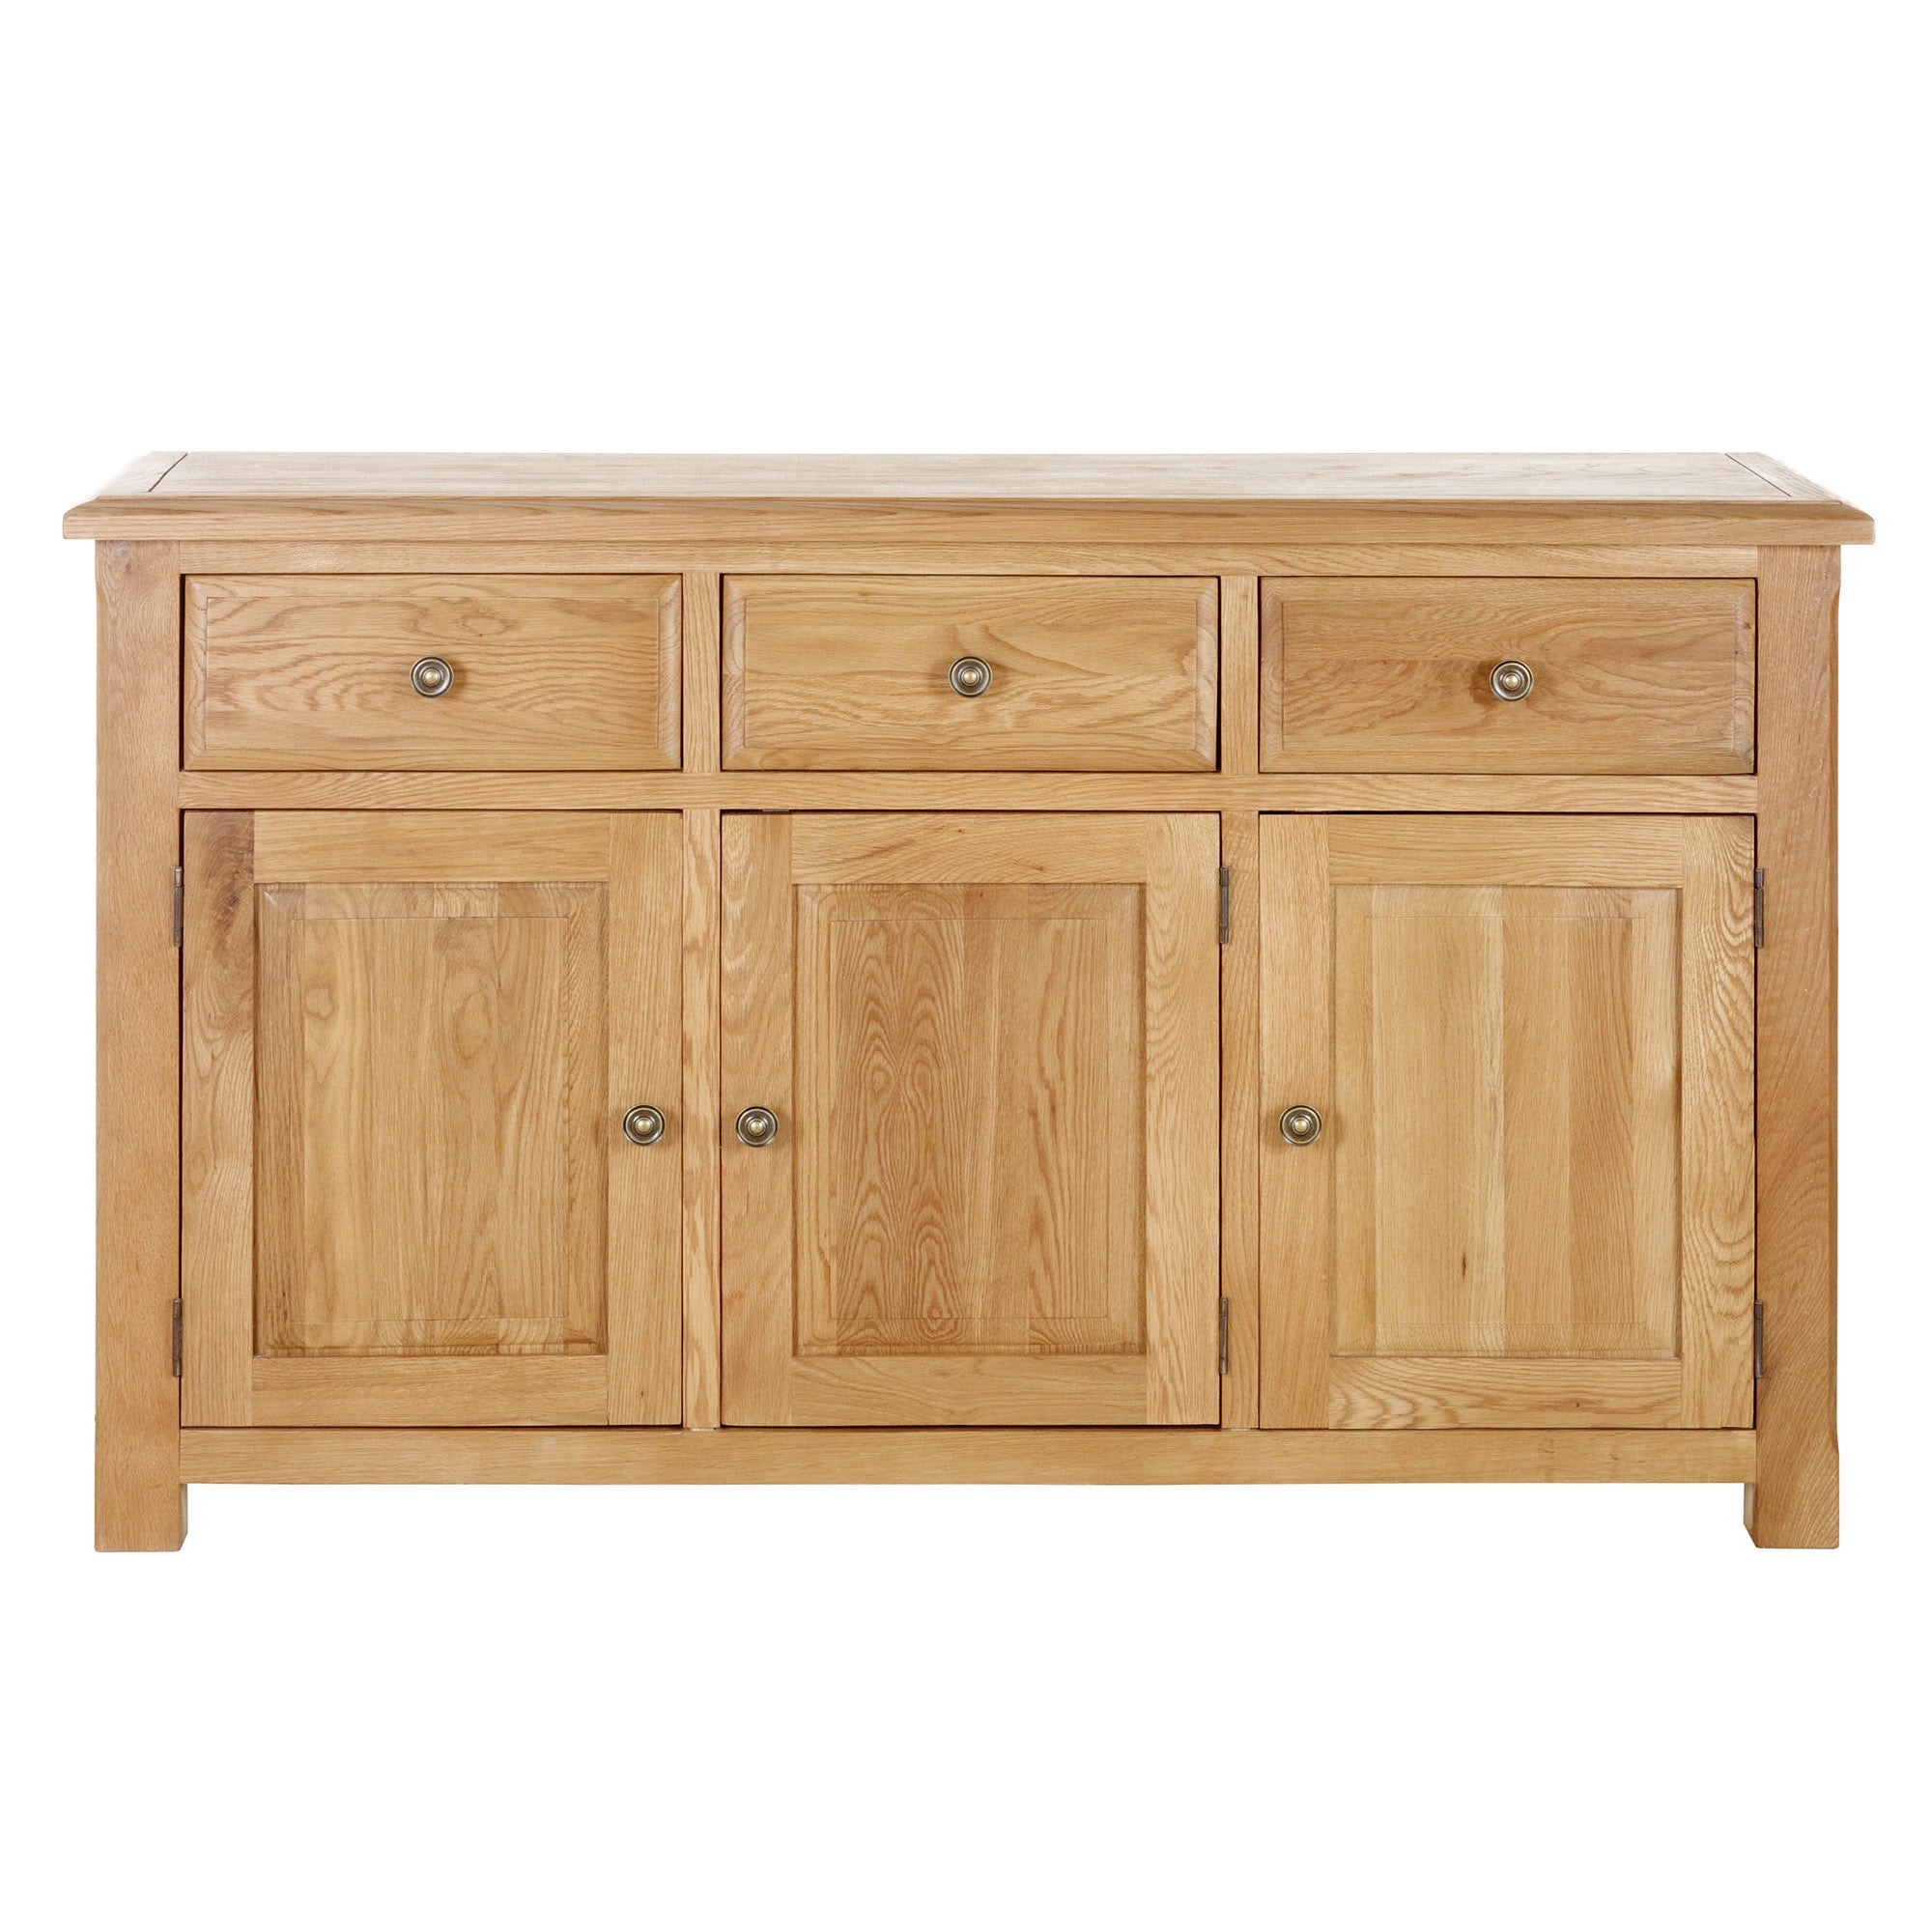 Gainsborough Oak Dining Furniture Collection